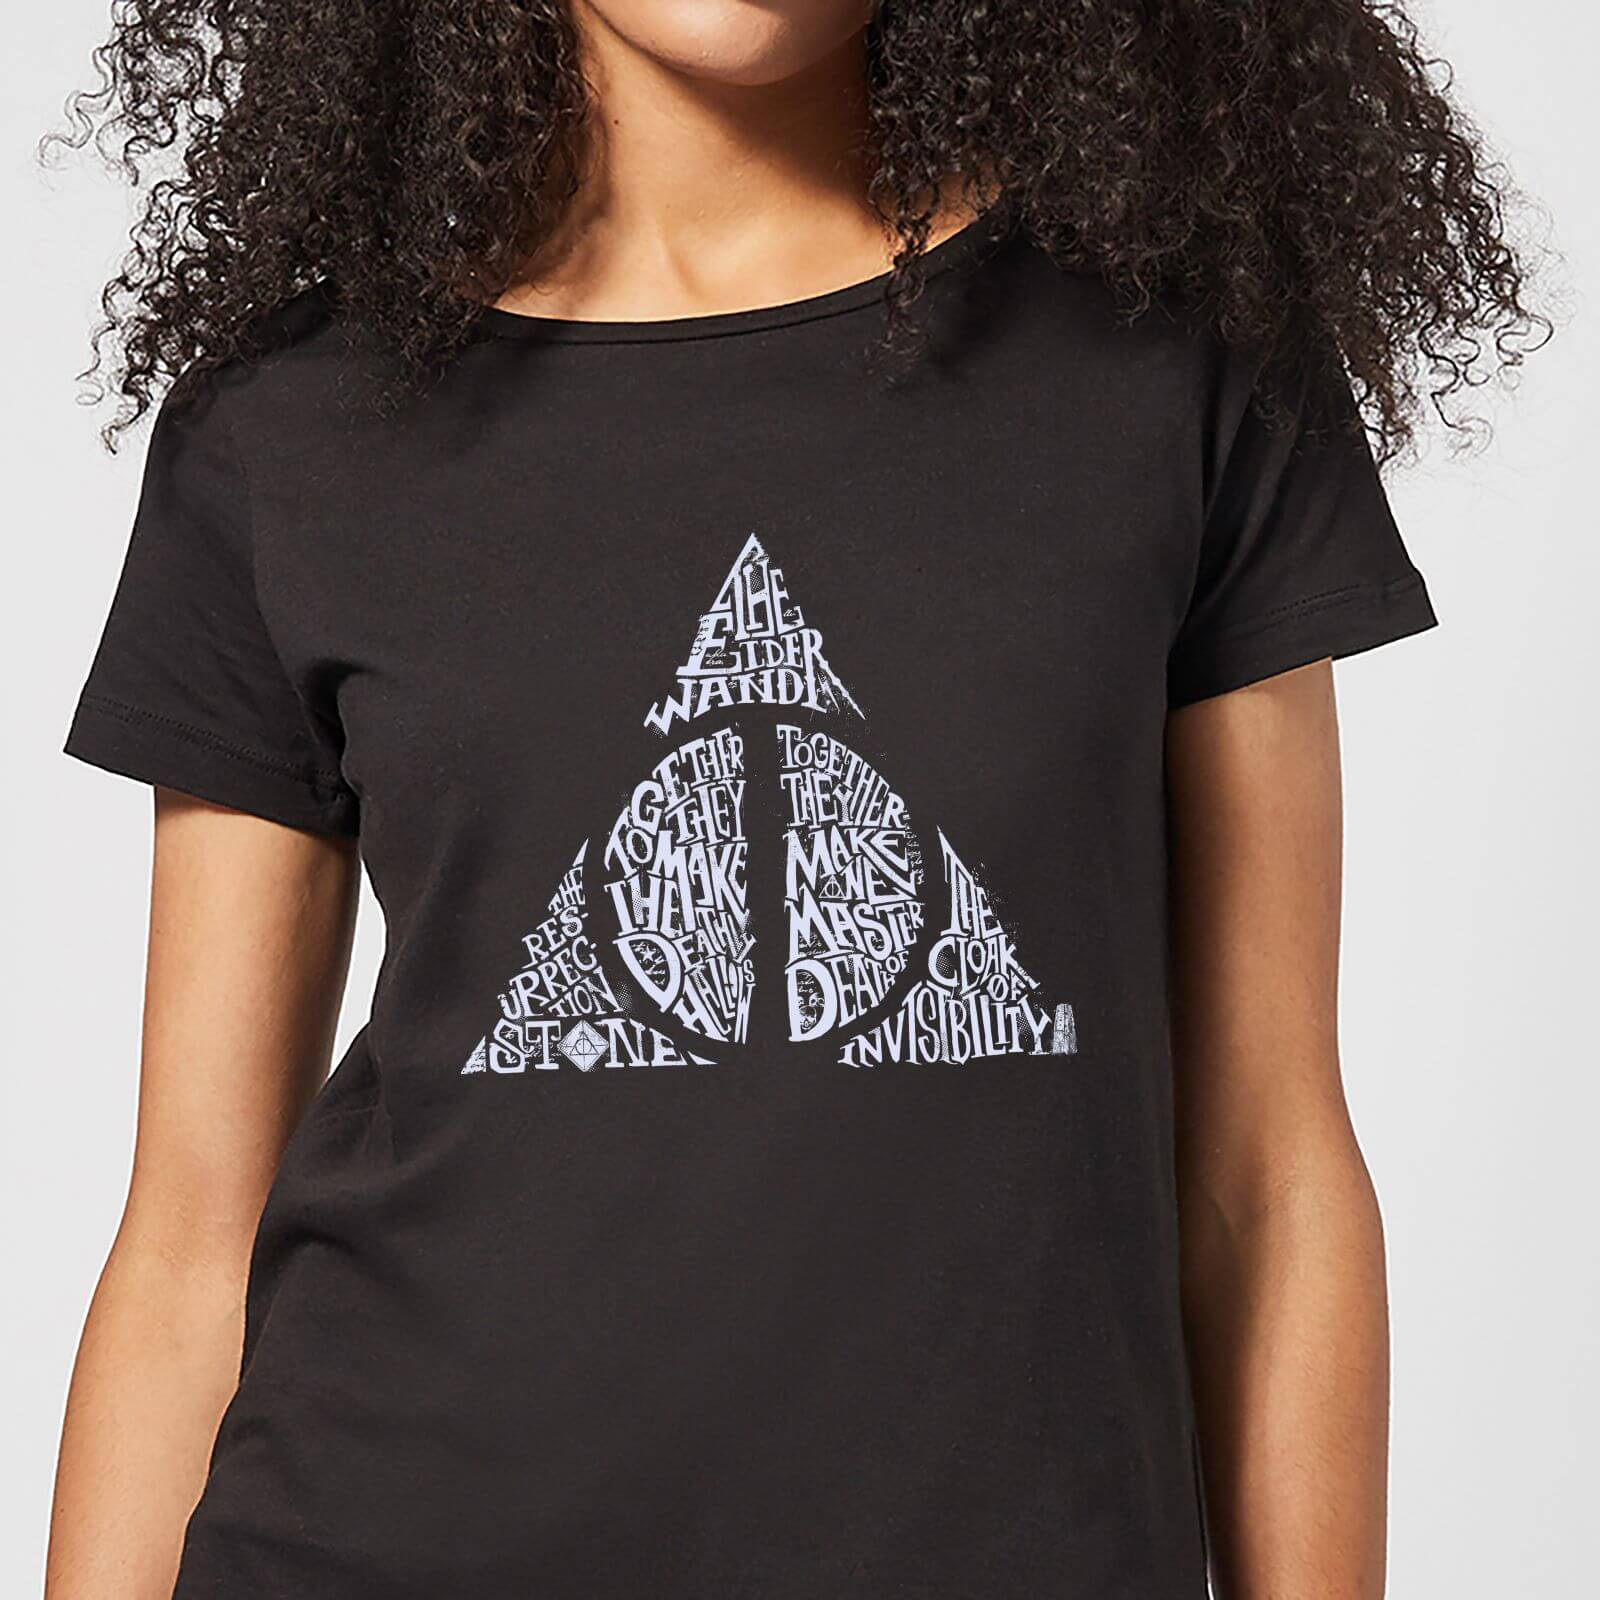 Harry Potter Deathly Hallows Text Women's T-Shirt - Black - S - Negro de Harry Potter